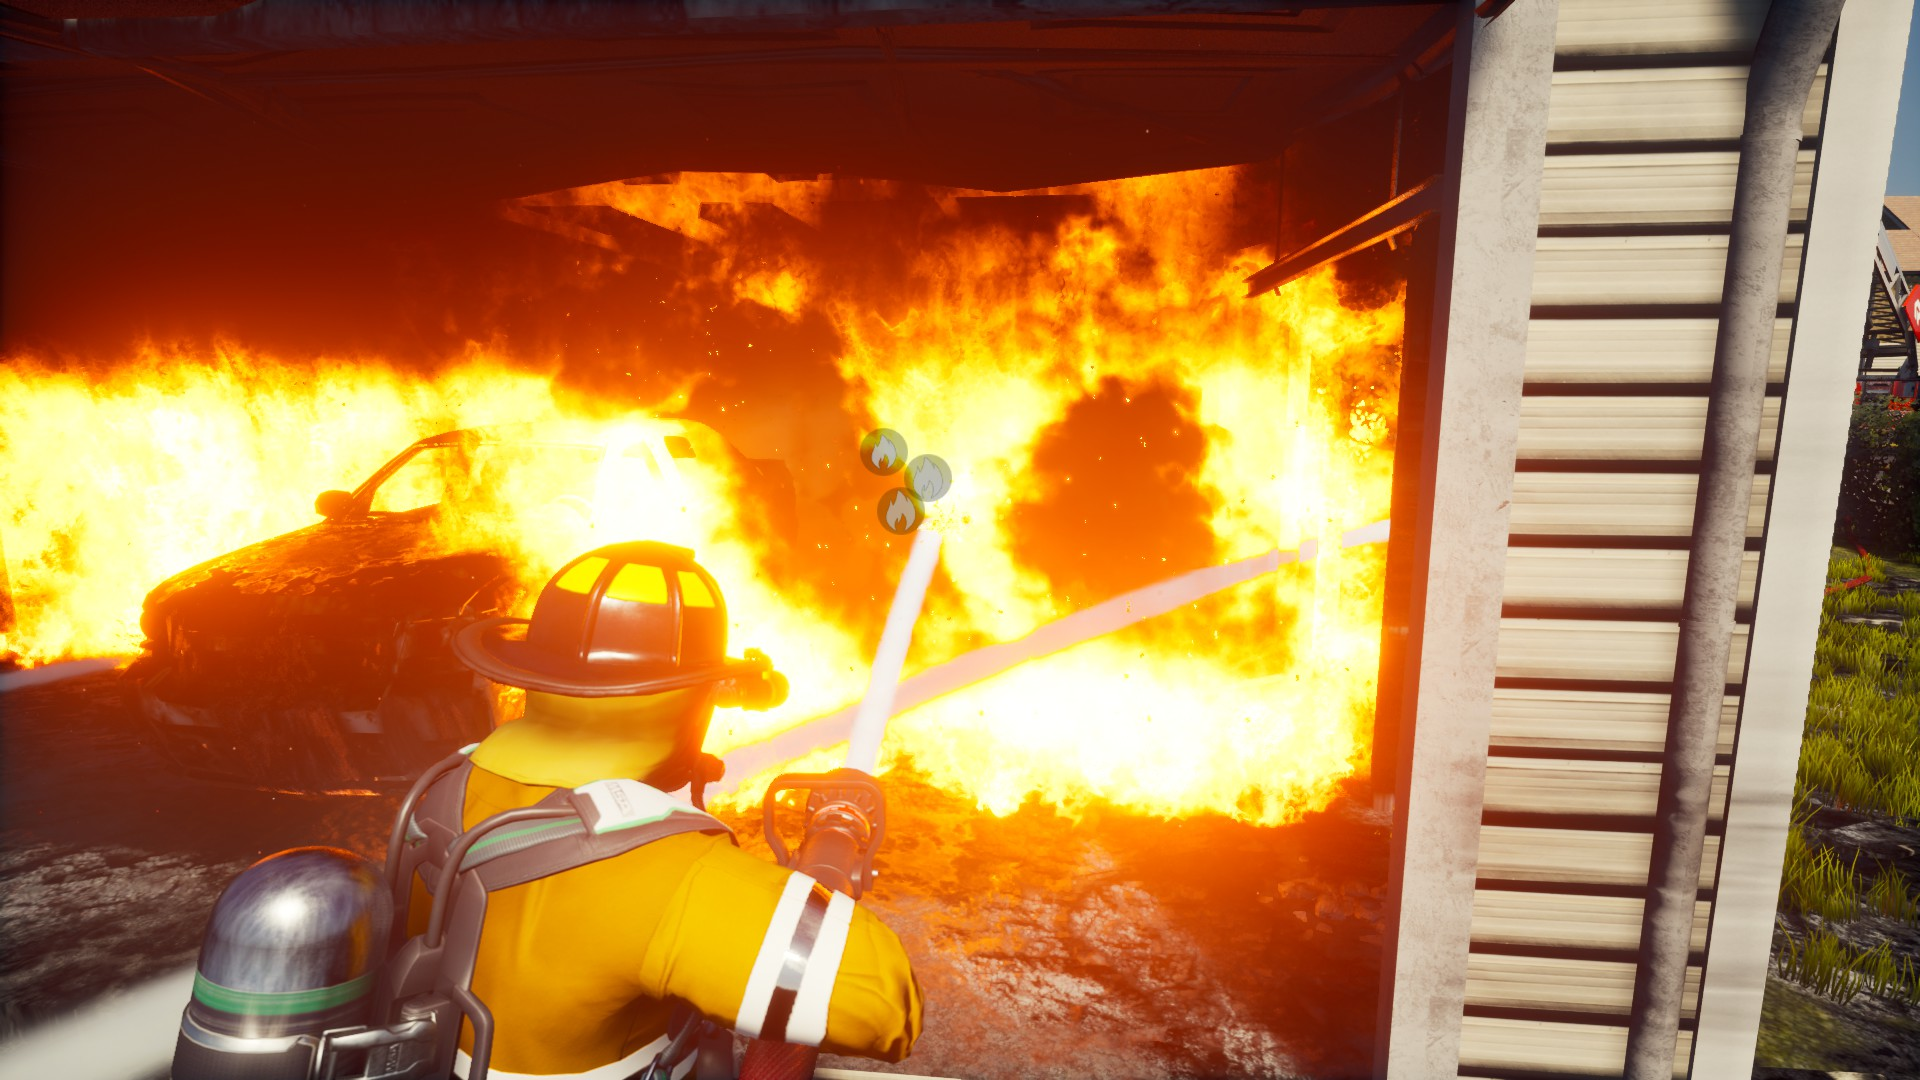 Firefighting Simulator – The Squad review — Through the fire and the shame